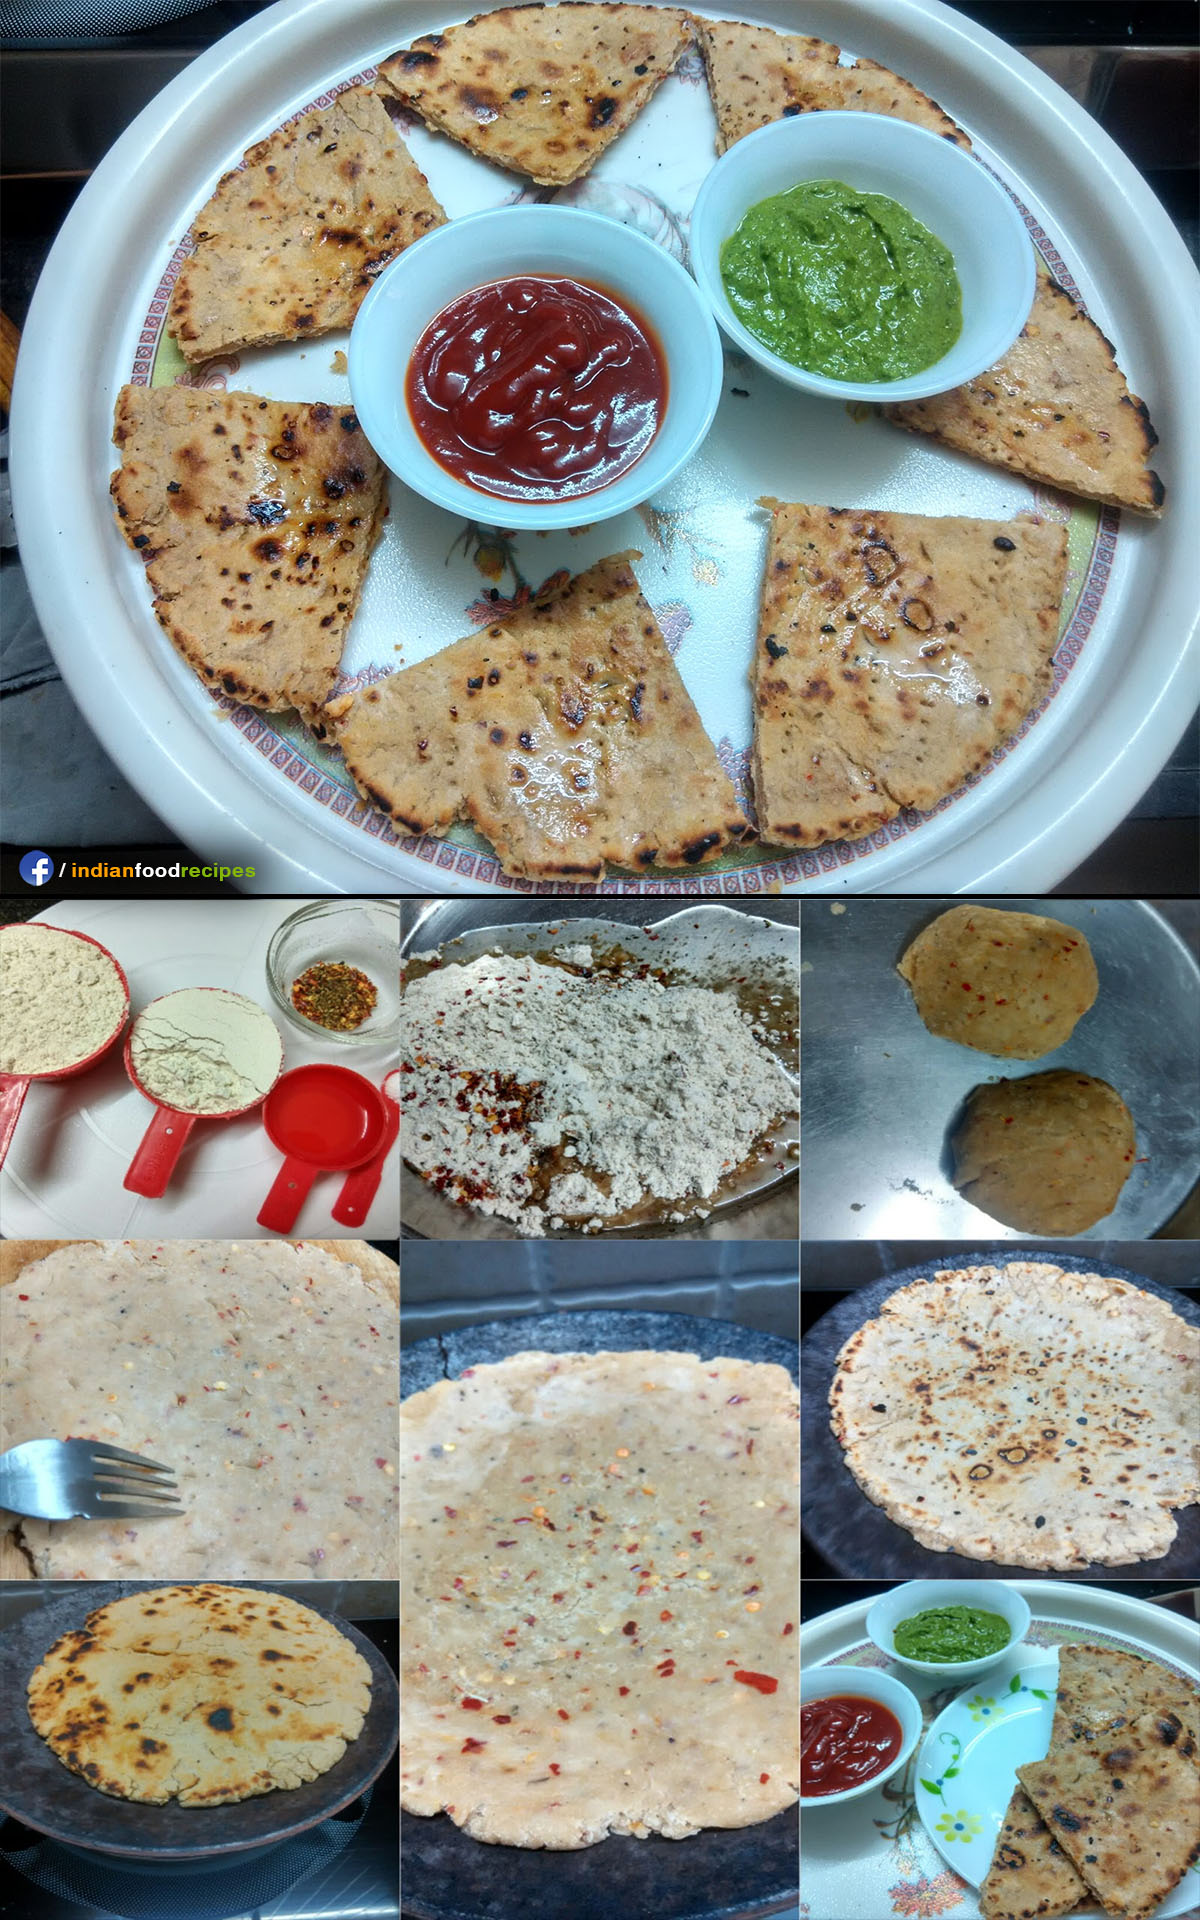 Masala Bhakri (Gujrati flat bread) recipe step by step pictures